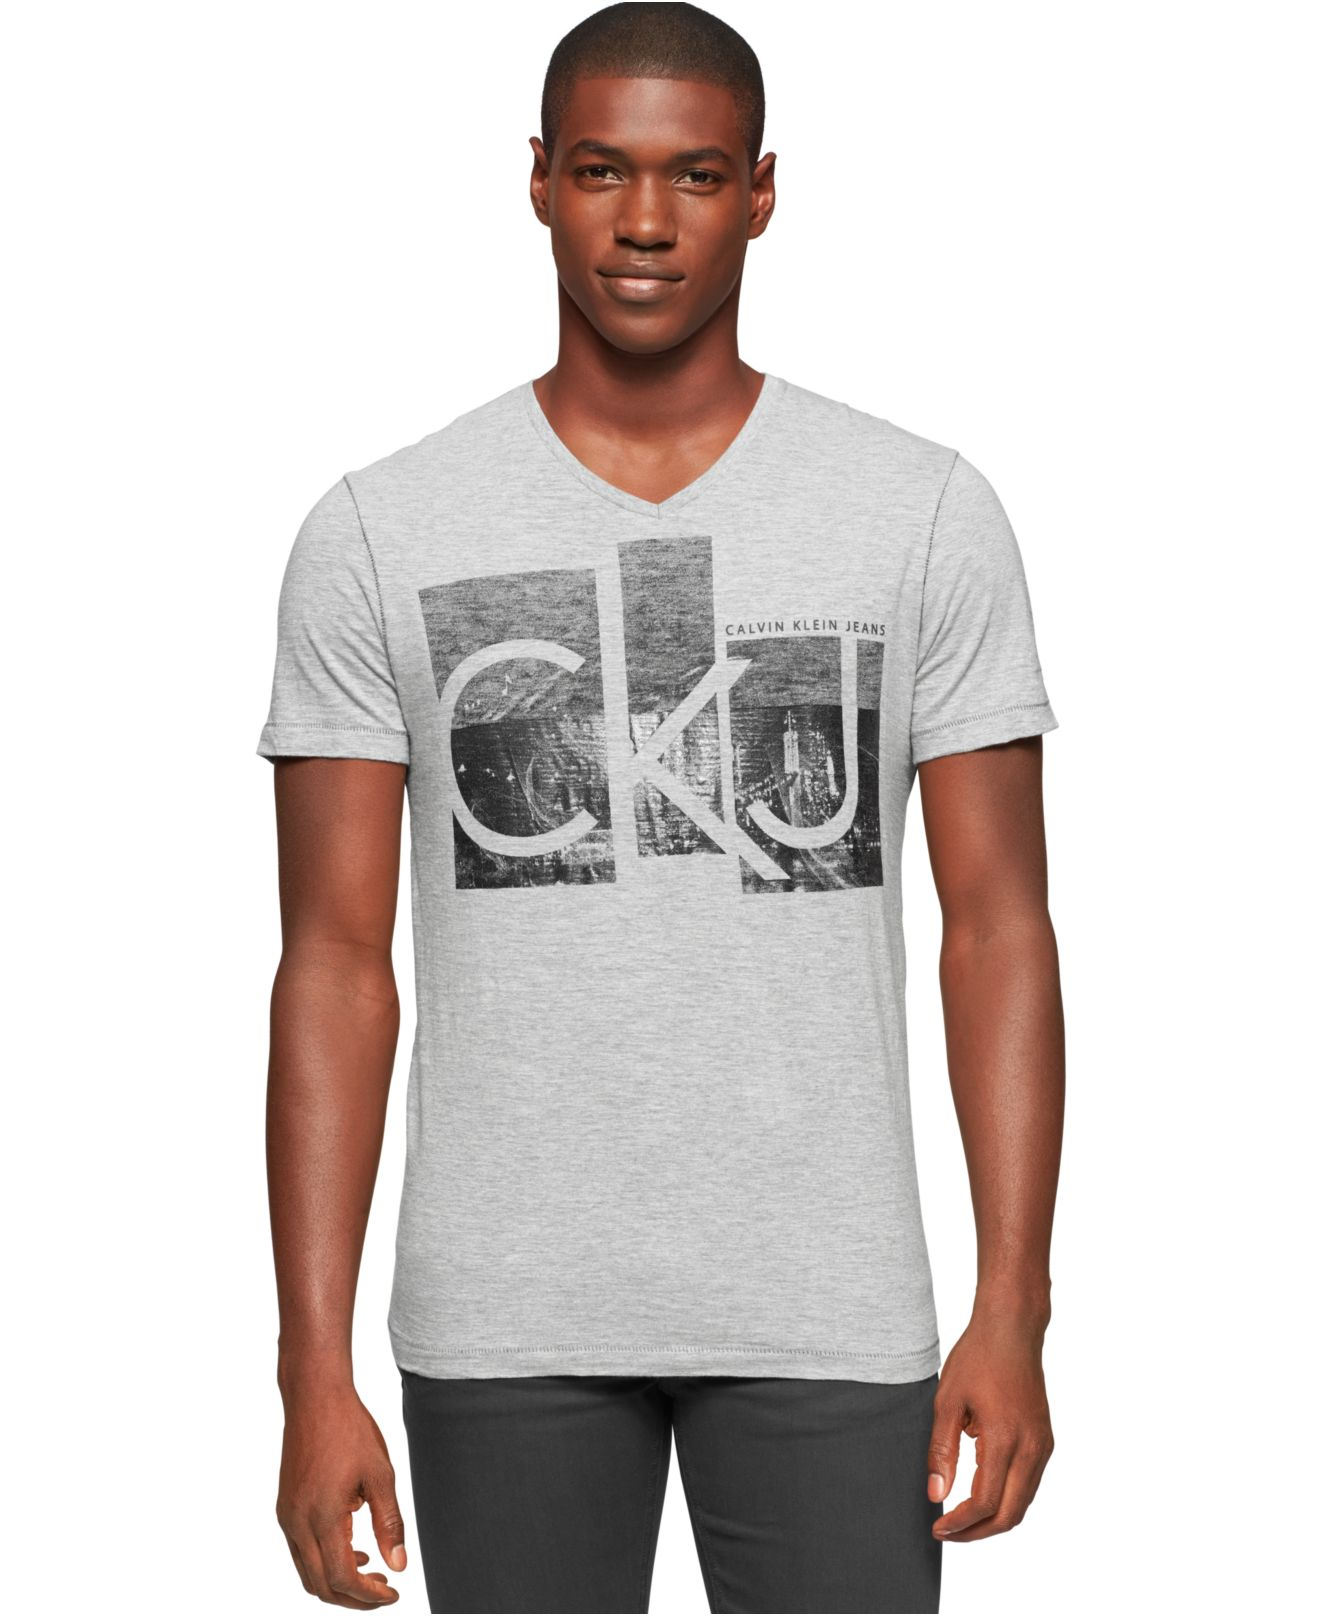 41d15431765a Lyst - Calvin Klein Ck City V-neck Graphic-print Logo T-shirt in ...